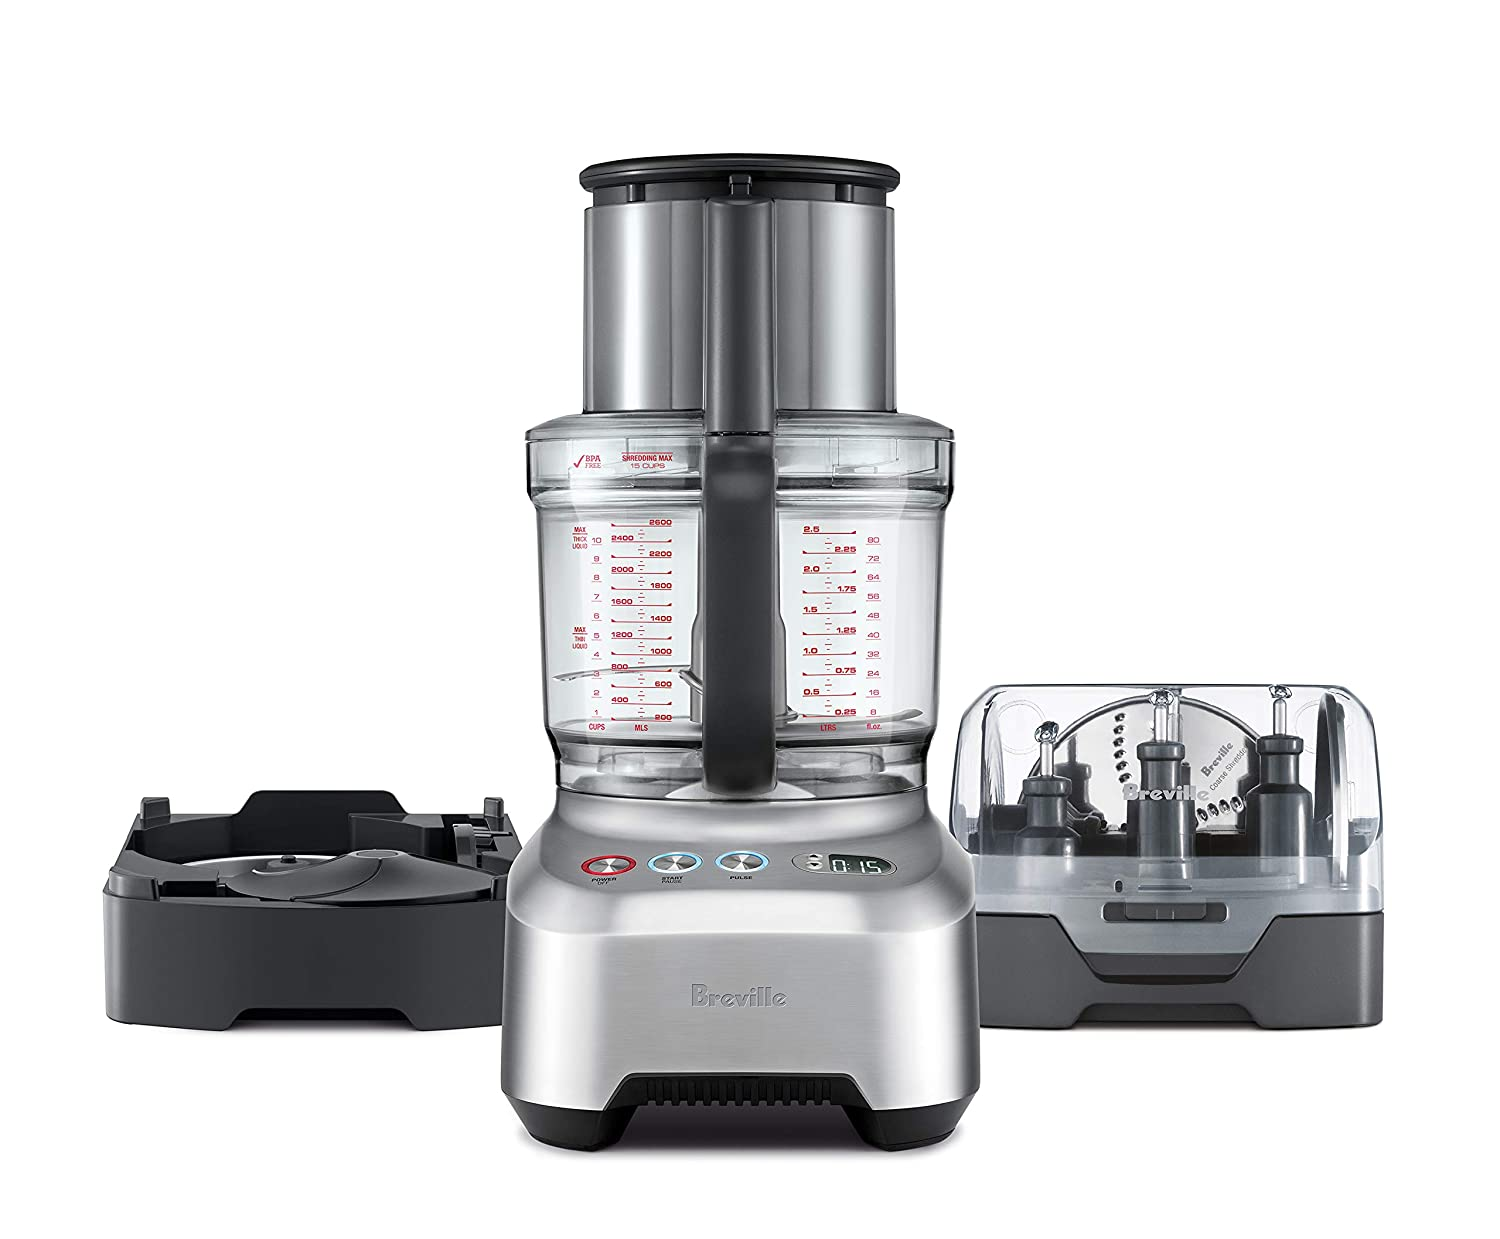 Breville BFP820BAL1BUS1 Sous Chef 16 Peel Dice Countertop Food Processor, Silver